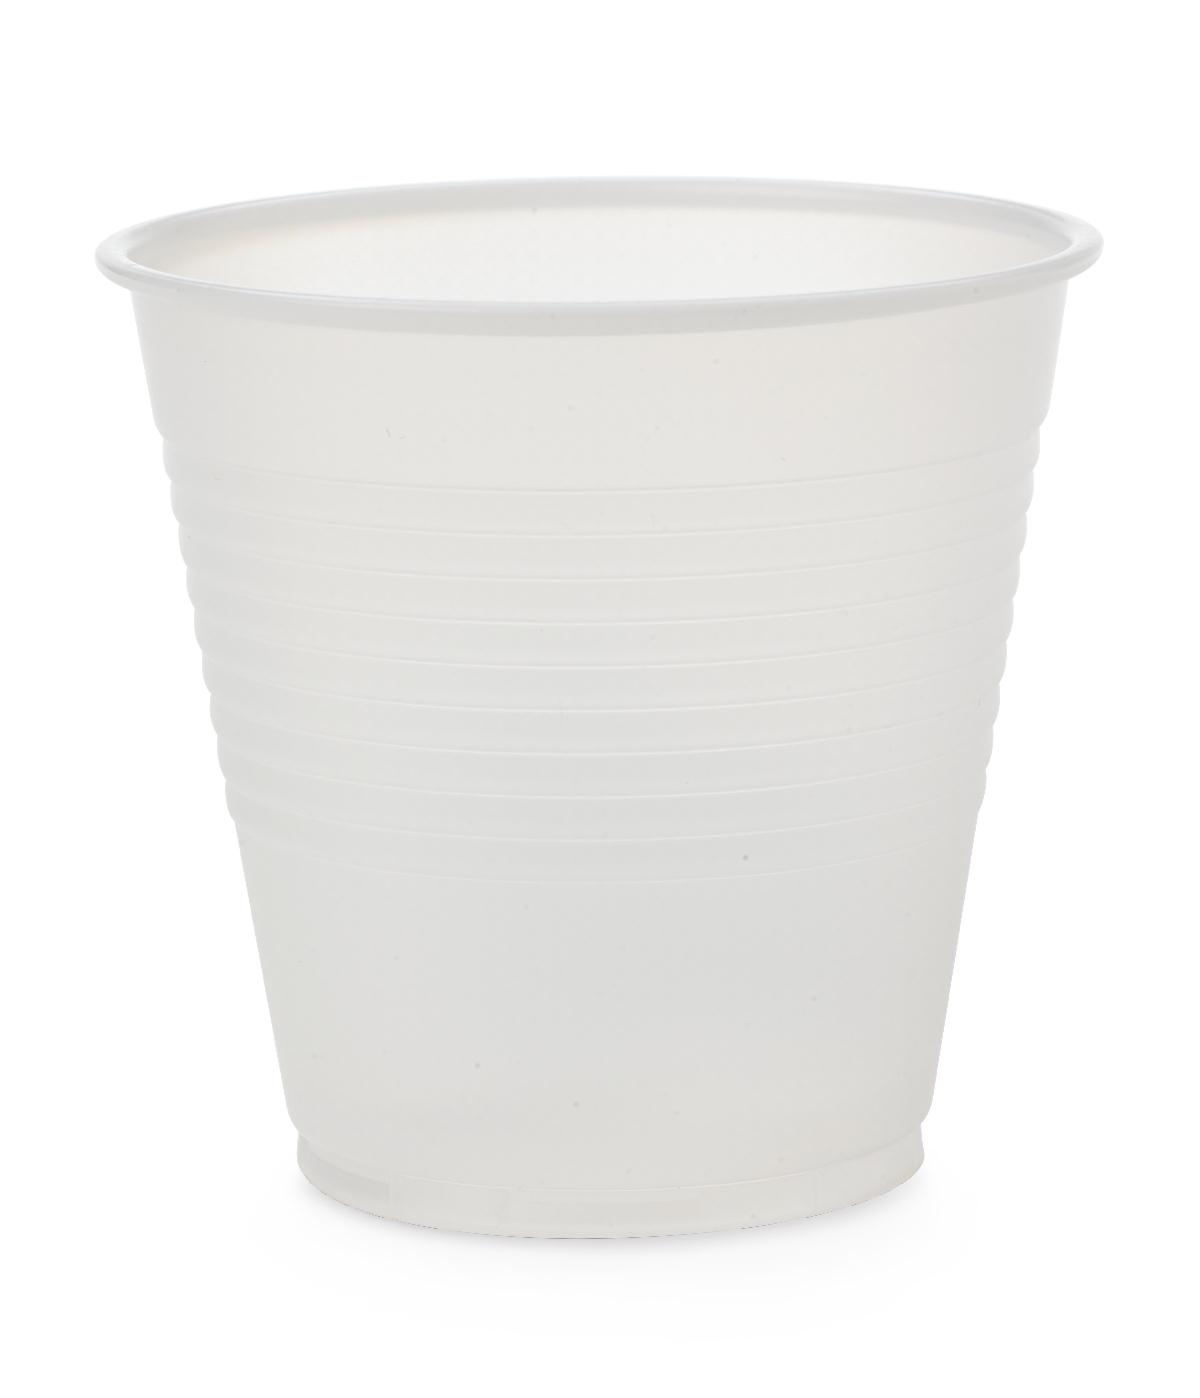 Nursing Supplies & Patient Care Food Service Drinking Cups & Glasses Cups & Glasses - Non03005 - Cup Plastic 5 Oz Translucent NON03005